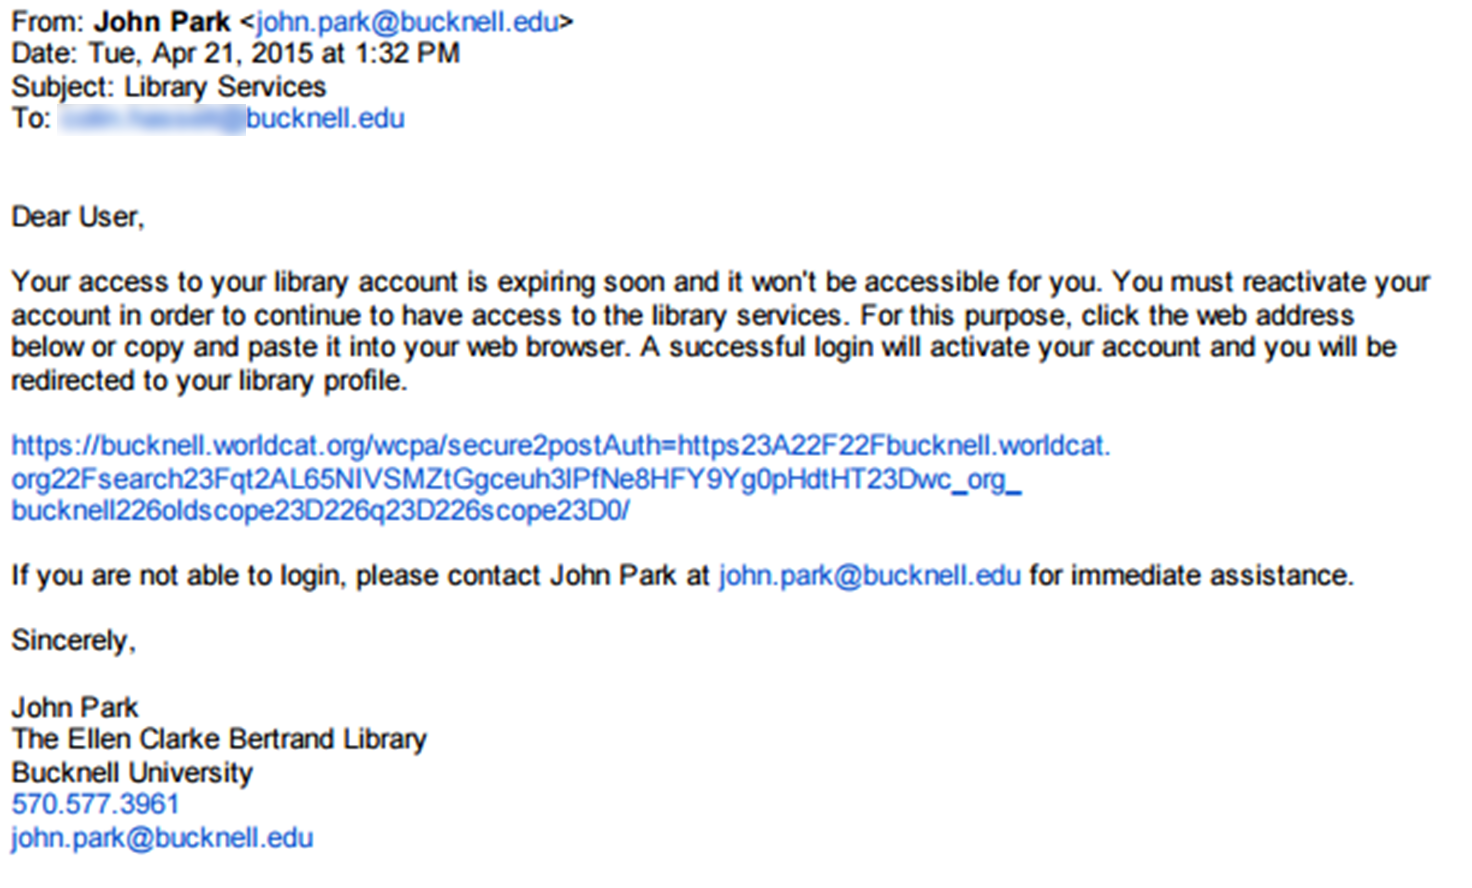 how to send phishing email to get passwords